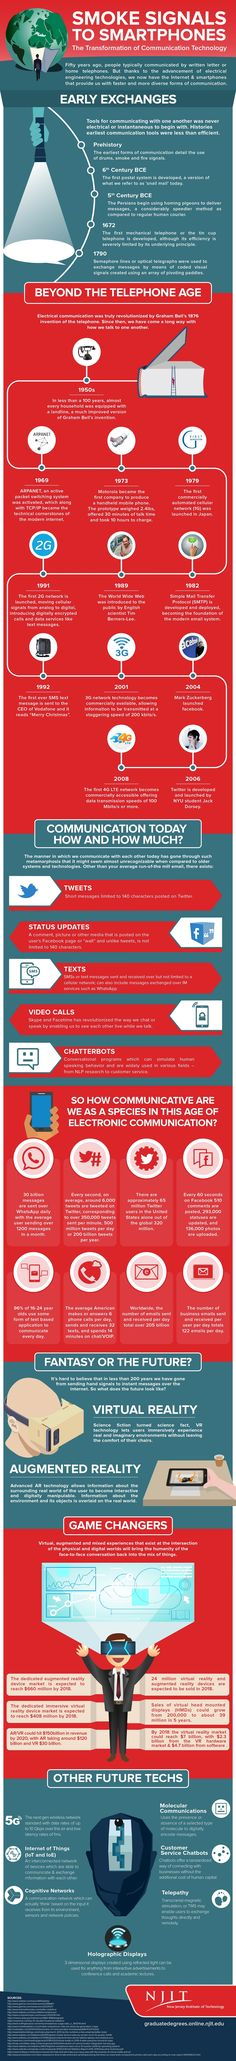 662 best electrical engineering images on pinterest technology how electrical engineering has transformed communication infographic fandeluxe Gallery